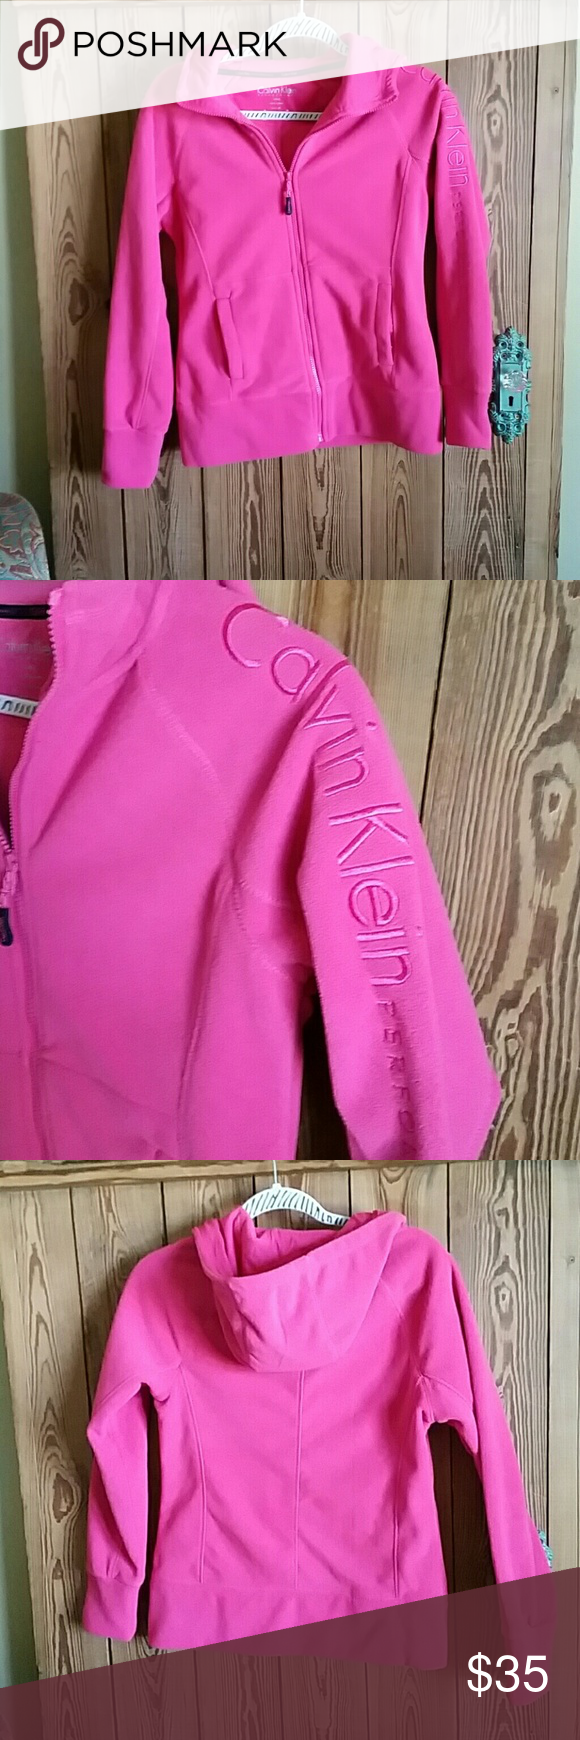 Calvin Kline Performance fleece hoodie Hot pink with logo on left sleeve. 2 front pockets. Worn once. Perfect condition! Calvin Klein Jackets & Coats